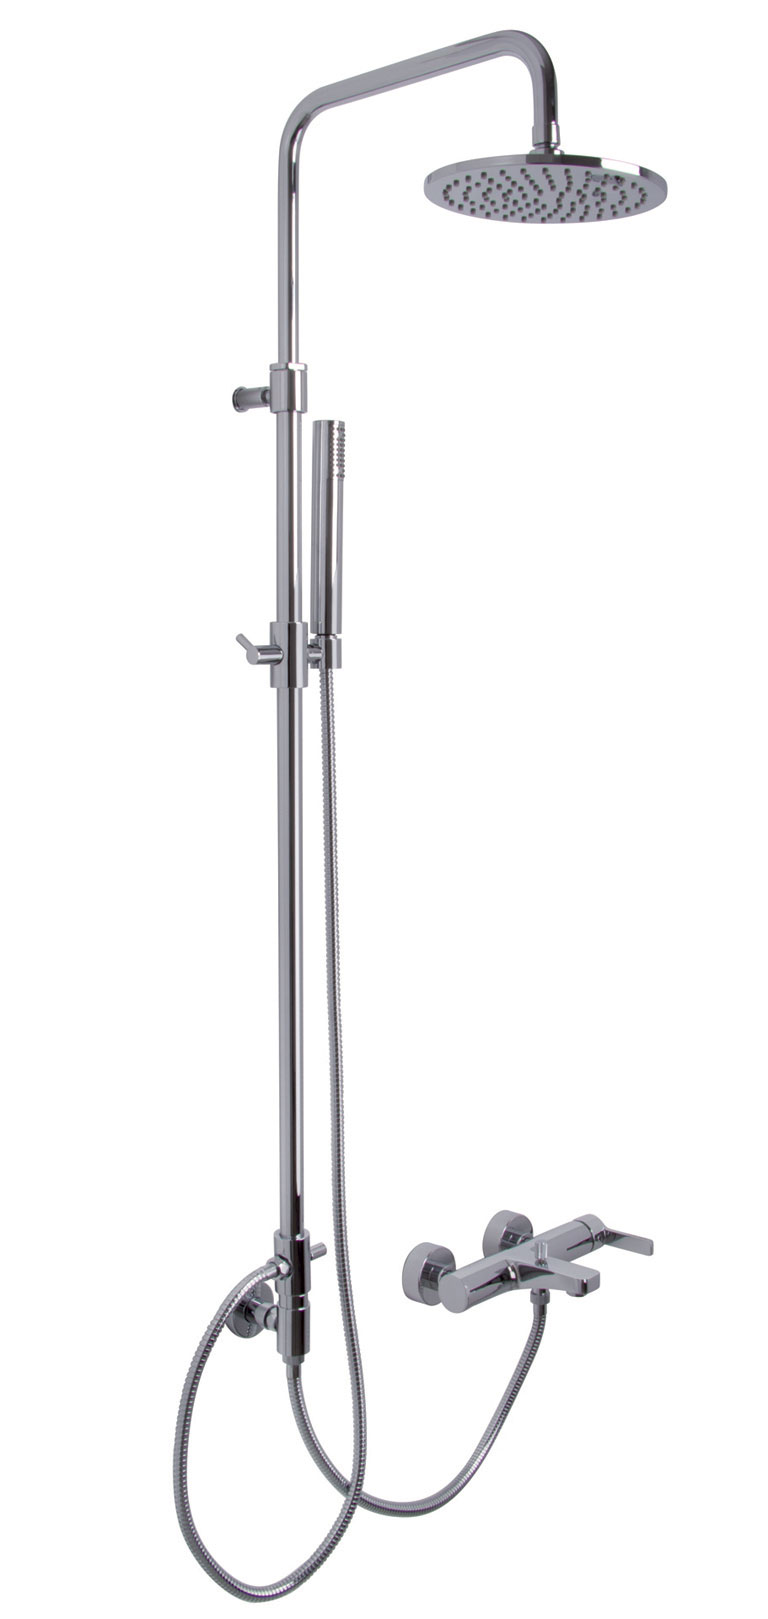 F3534/2 Exposed Bath Mixer with Shower Column, Showerhead And Shower Set